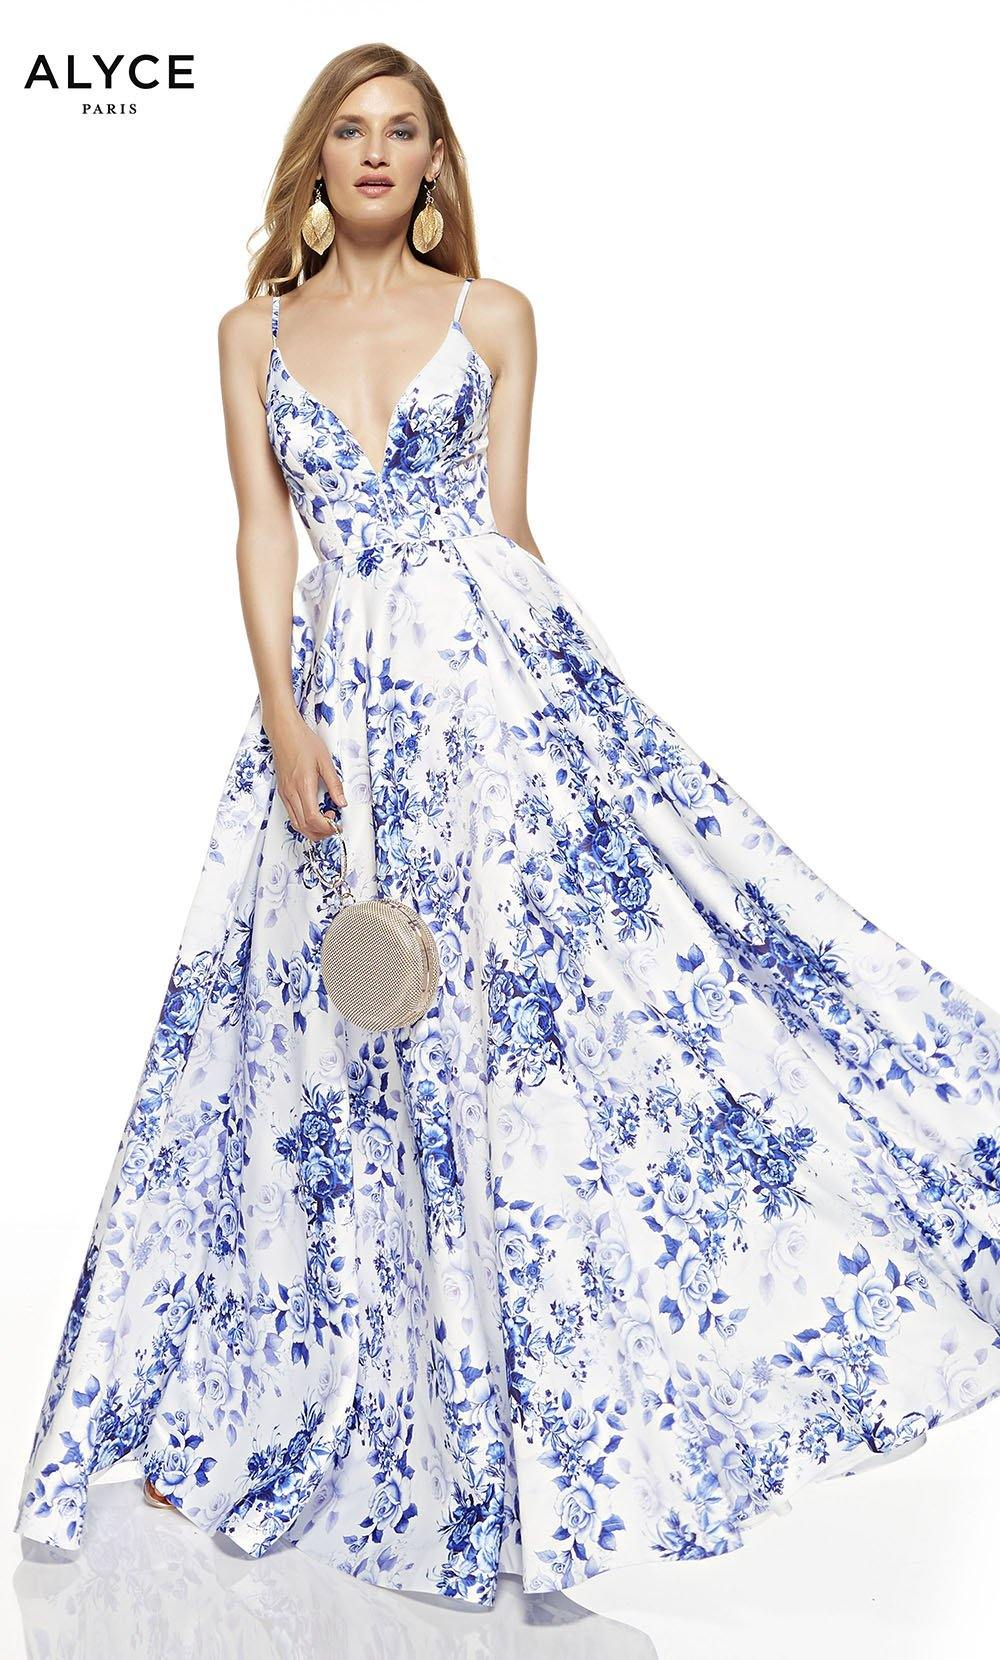 Diamond White-Royal prom dress with floral print and a plunging neckline